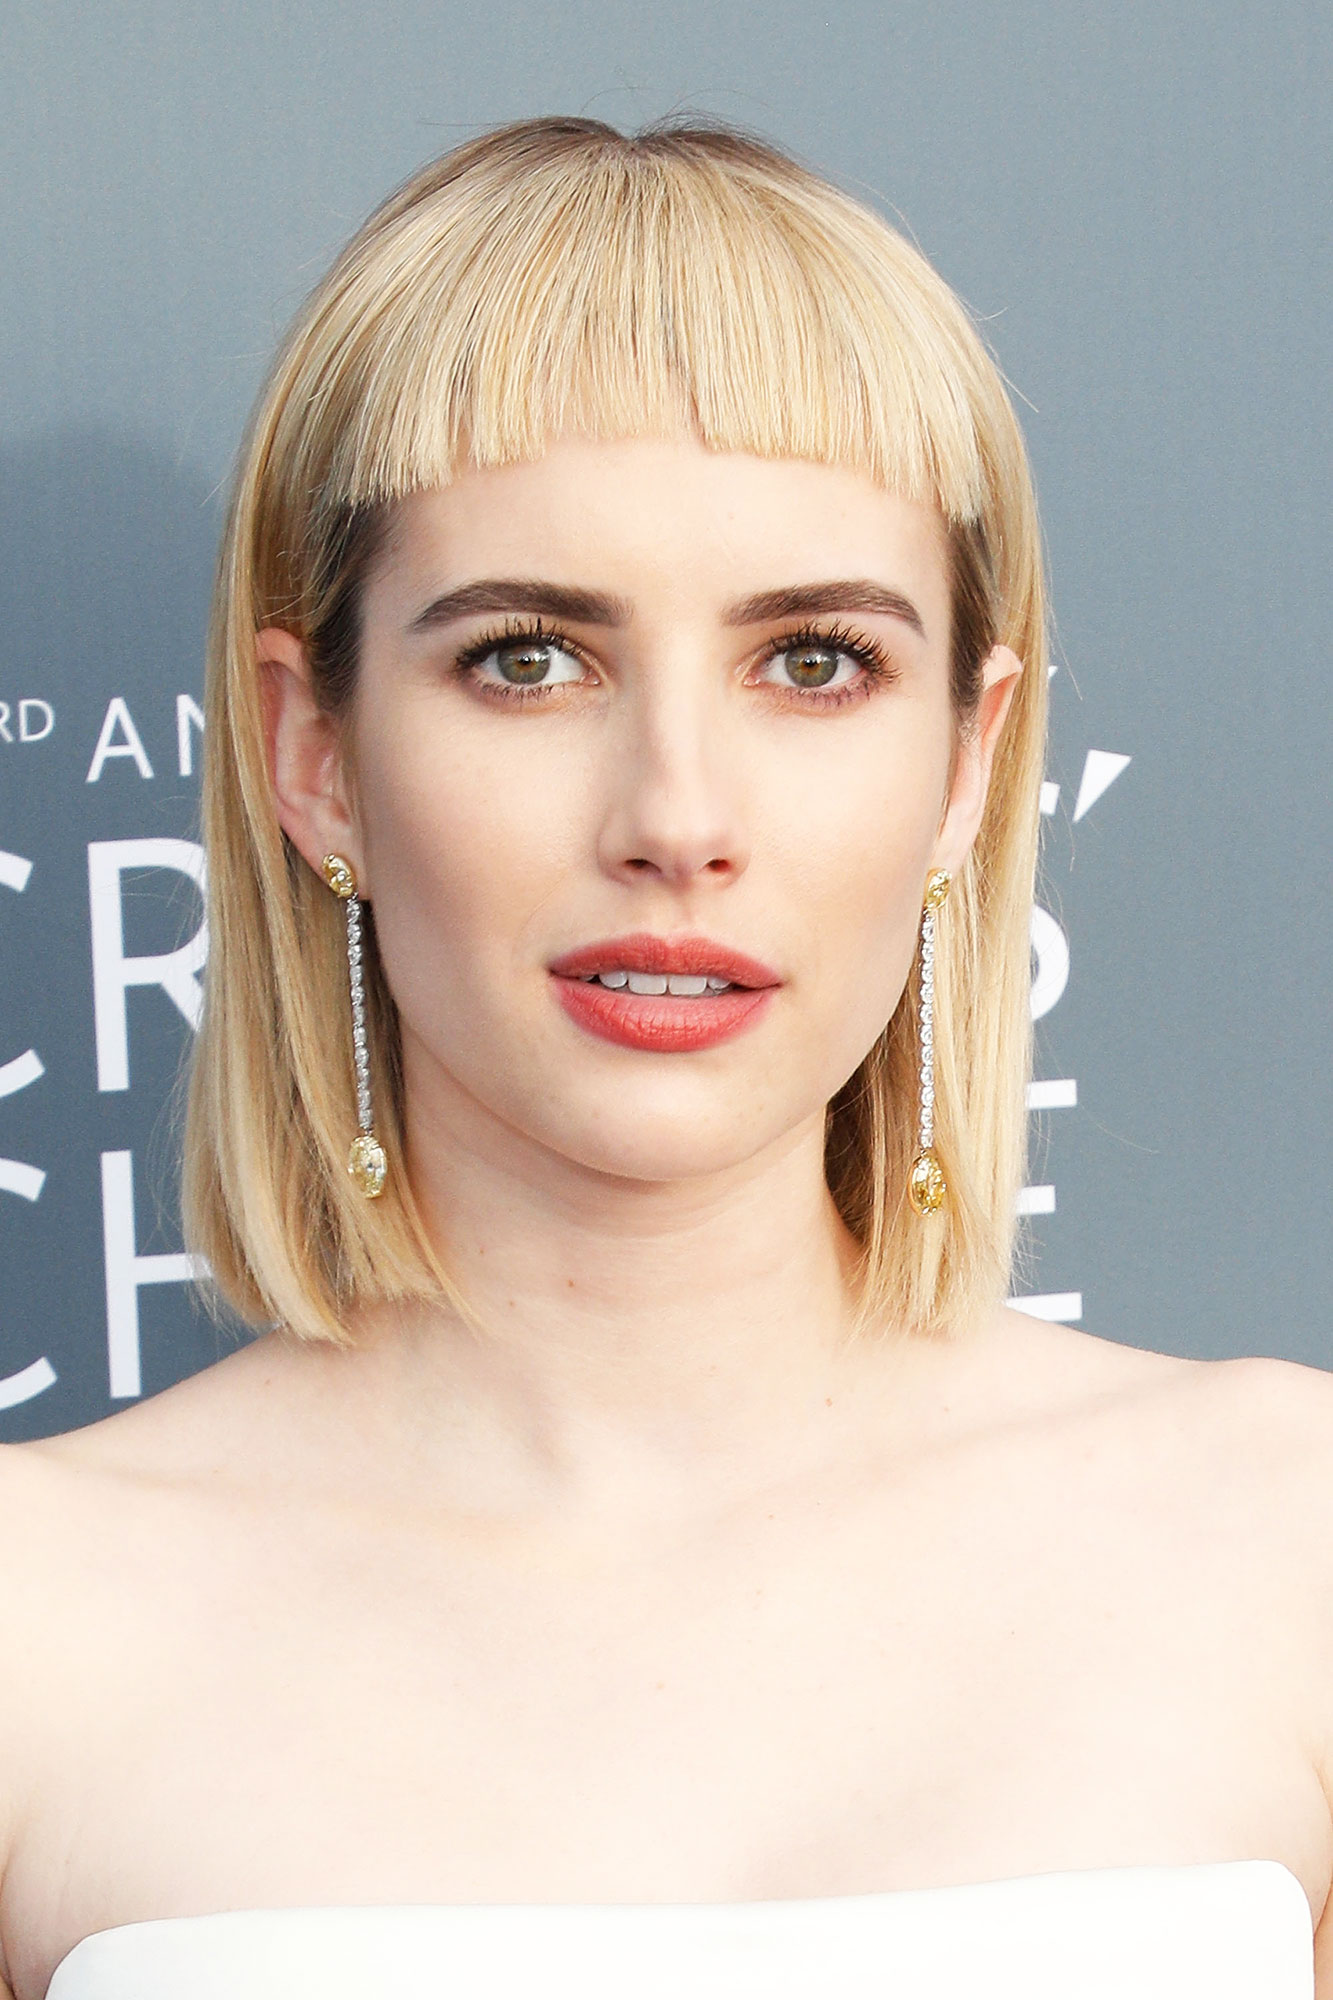 Emma Roberts Celebrity Bangs: Fierce Fringe Inspo For Your Next Haircut - It was all about the retro vibes for the blonde beauty at the 2018 Critics' Choice Awards, where she debuted blonde micro bangs with her blunt bob hairstyle.